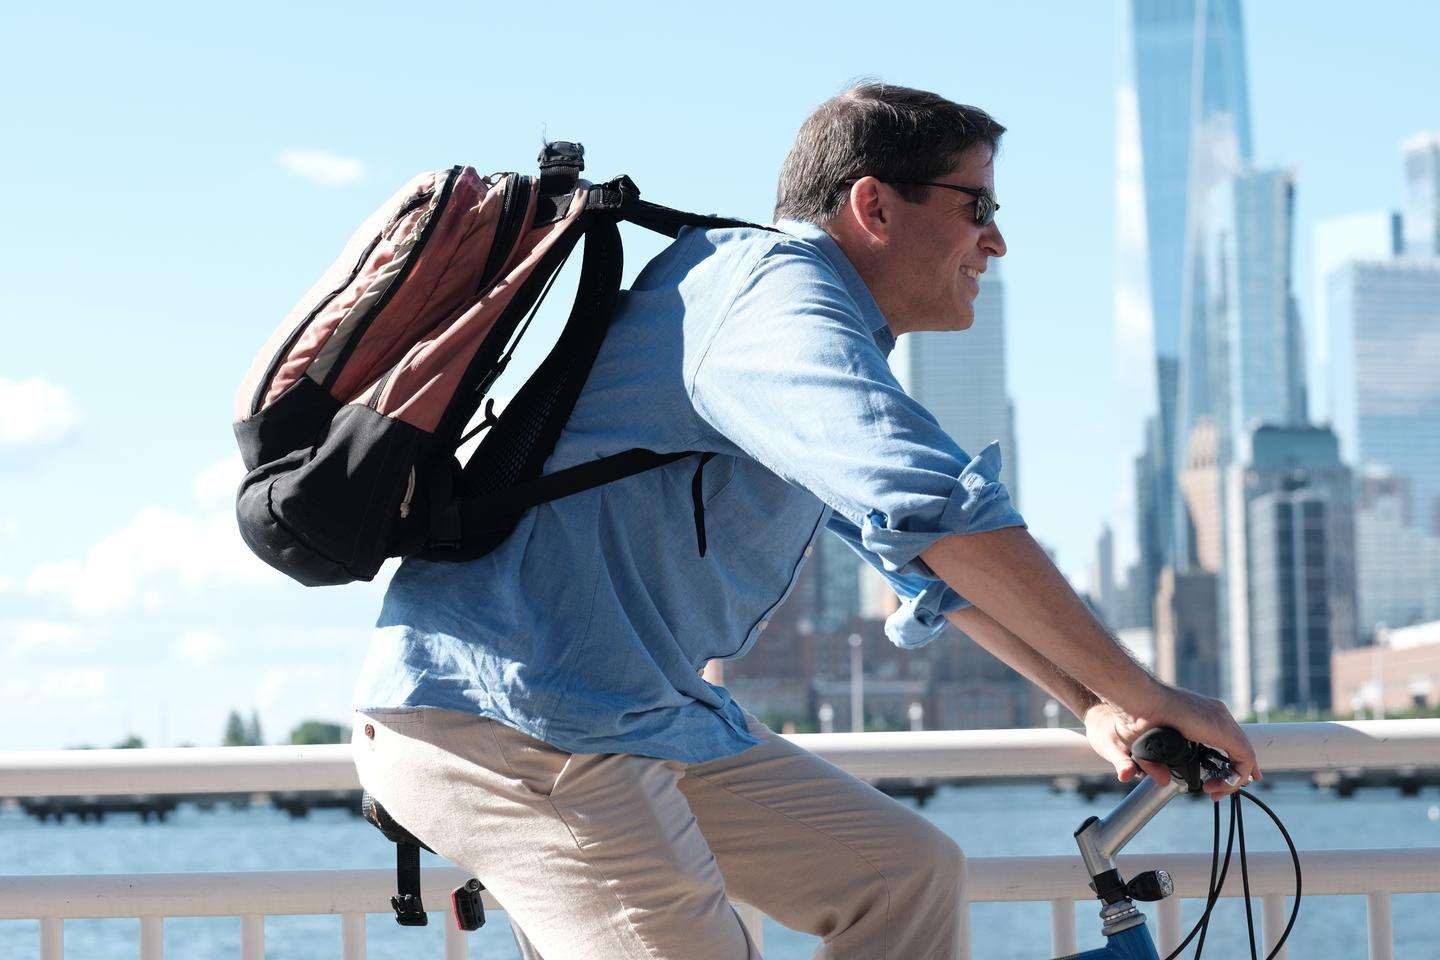 VentaPak creator Mark Dingle, using the device with a third-party backpack